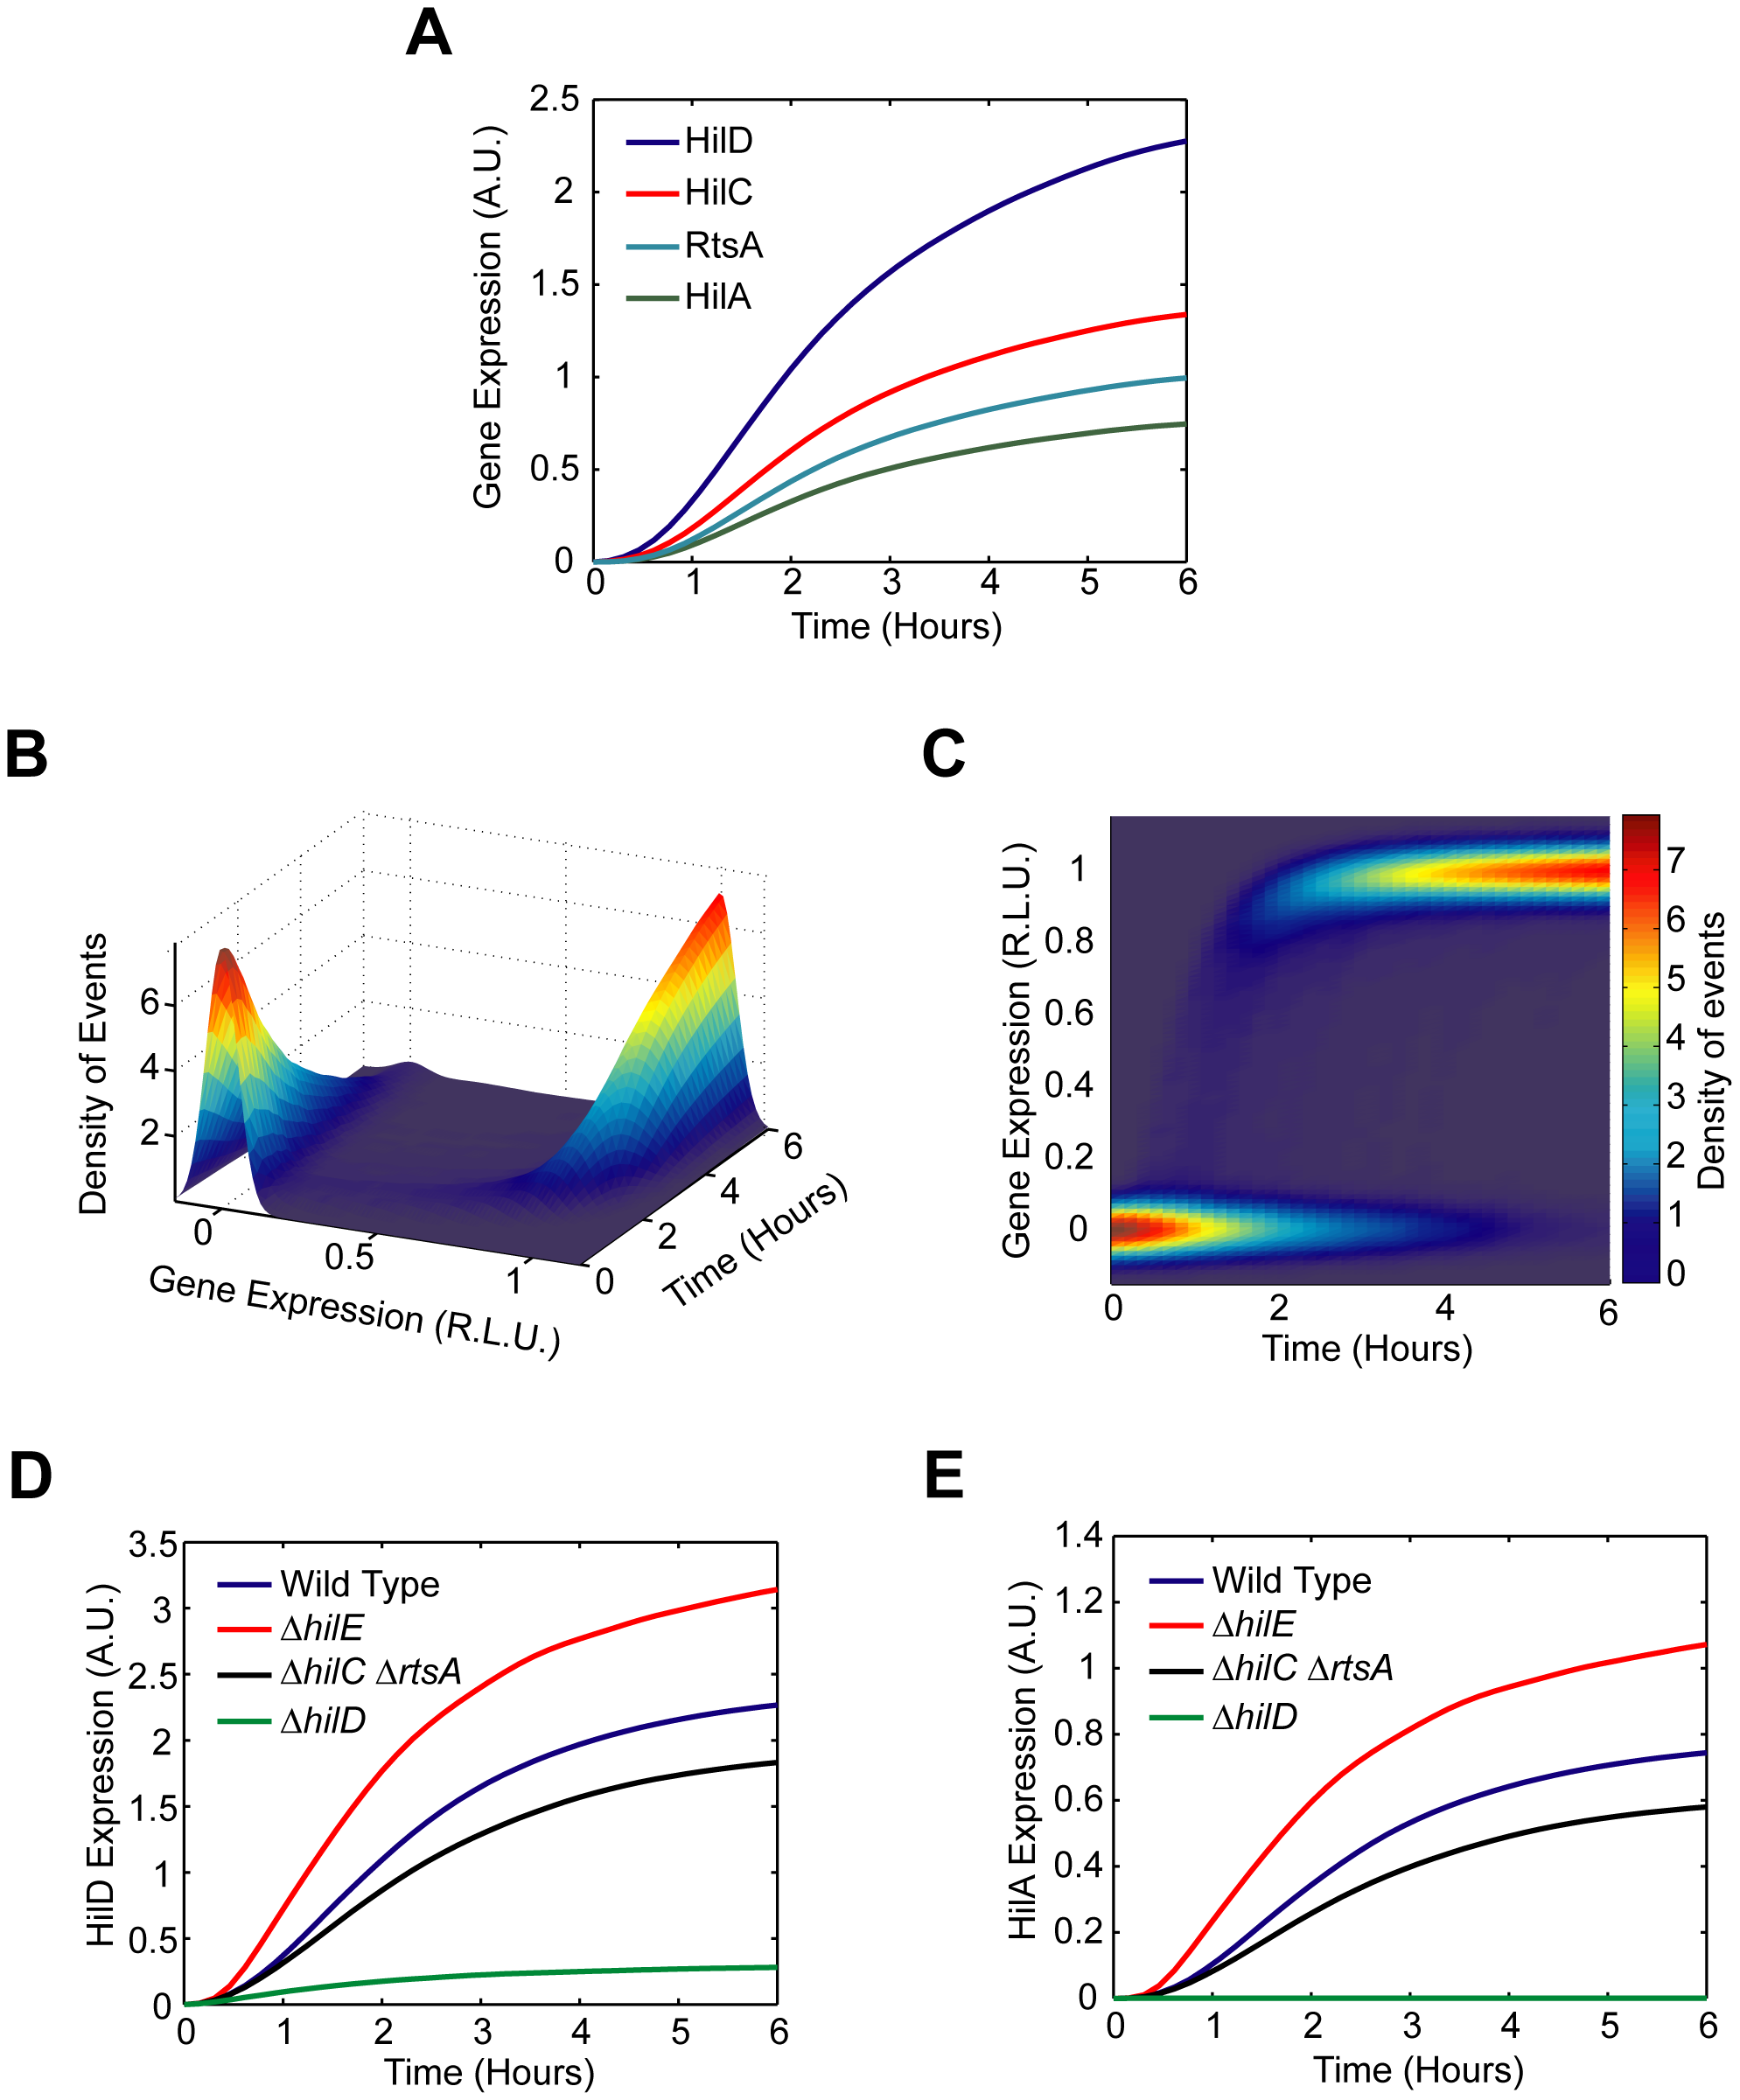 Mathematical model is able to accurately capture SPI1 gene expression dynamics both for wild type and key mutants.